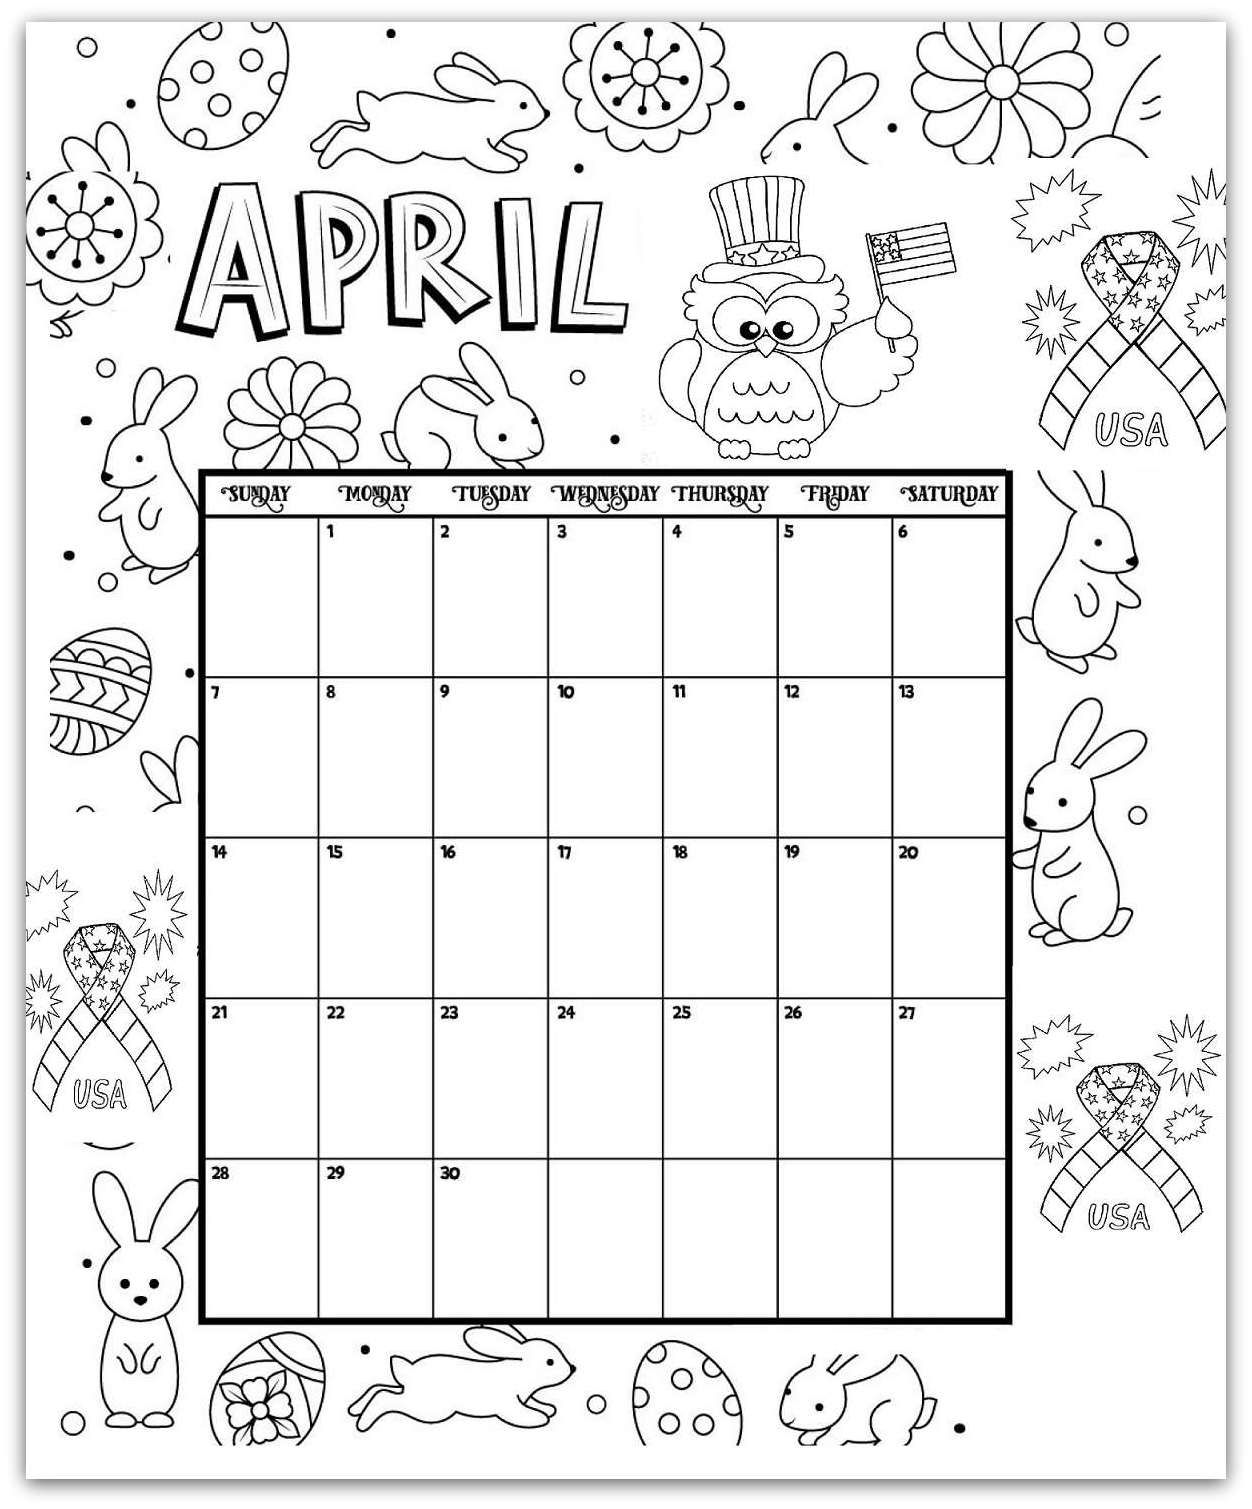 2019 Coloring Pages Printable Monthly Calendars For Kids Calendarbuzz Coloring Calendar Kids Calendar Calendar Pages